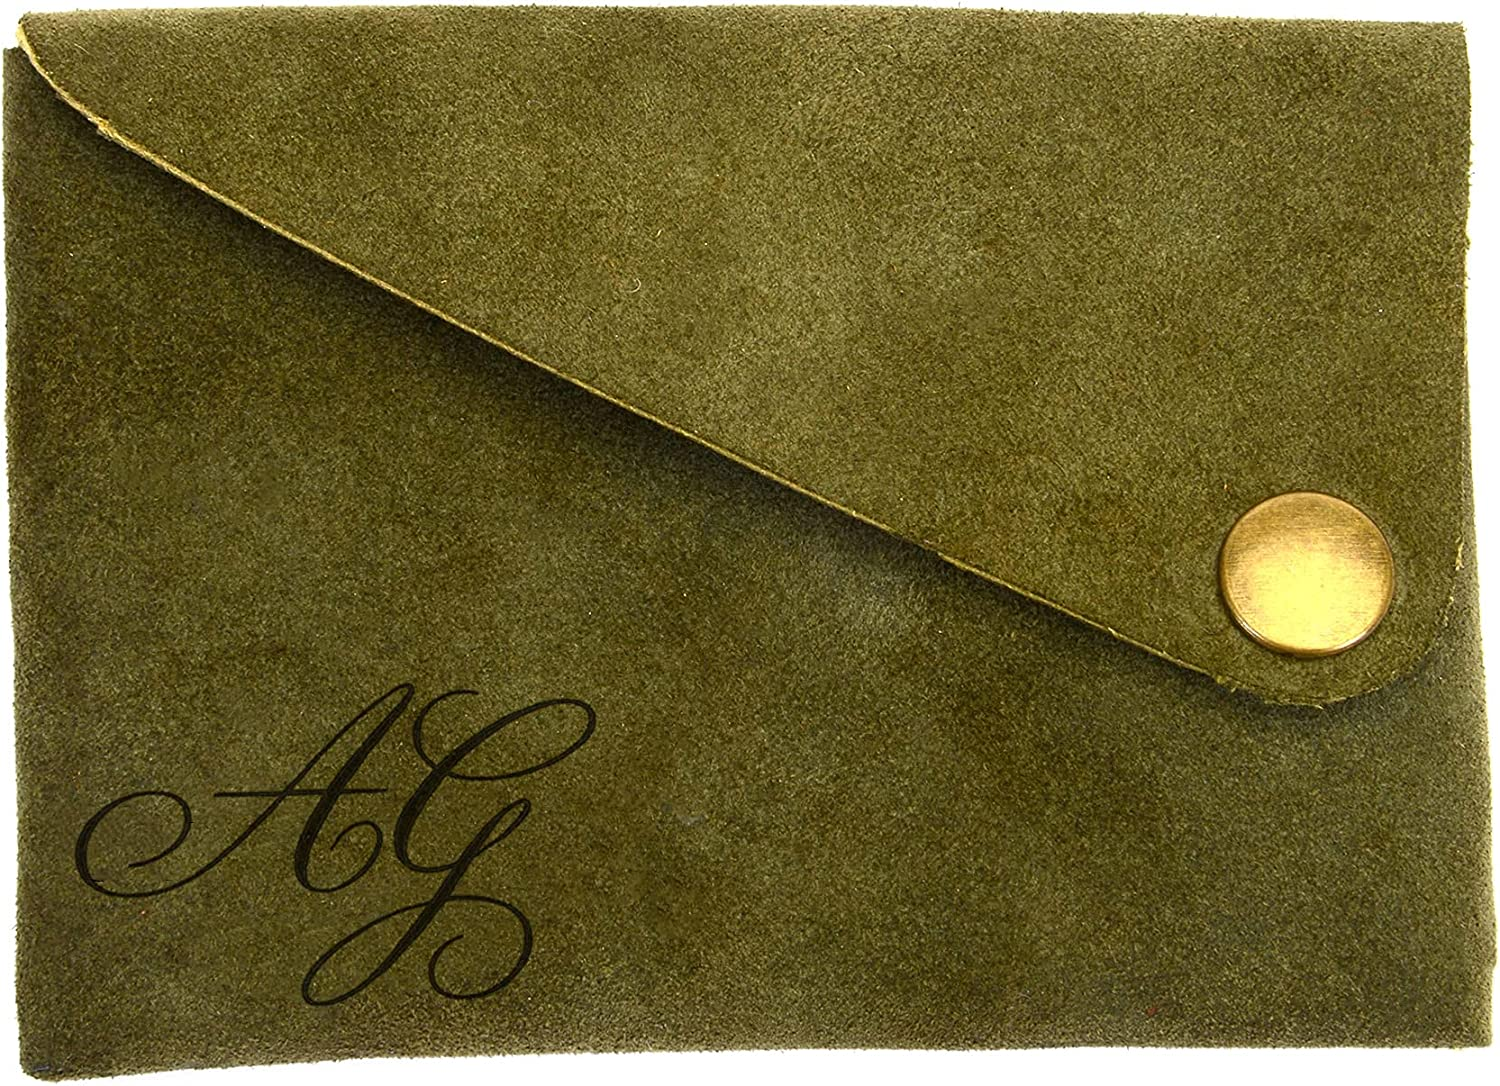 Suede Leather Flap Wallet Personalized Wing Fold Genuine Leather Wallet Men's Leather Card Wallet in Khaki Green